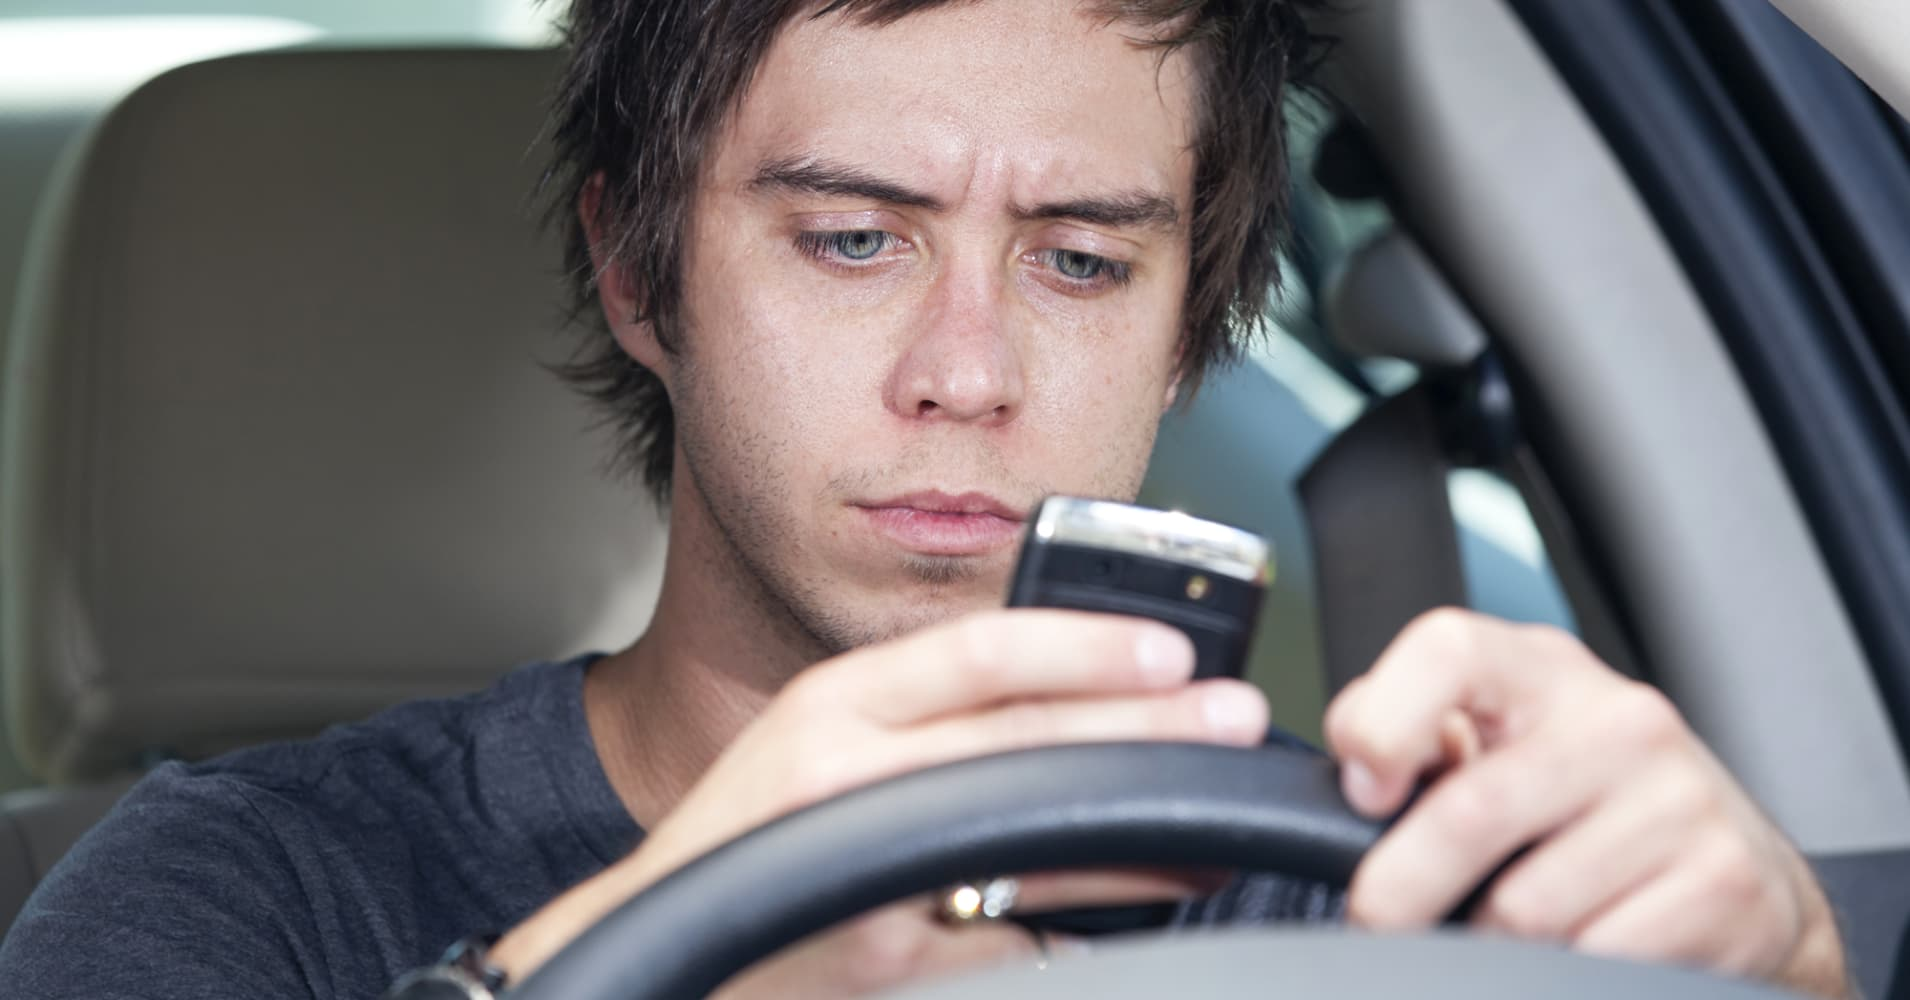 the risks of distracted driving Teens and distracted driving: texting, talking and other uses of the cell phone behind the wheel madden & lenhart hands-free is not risk-free newsletters.